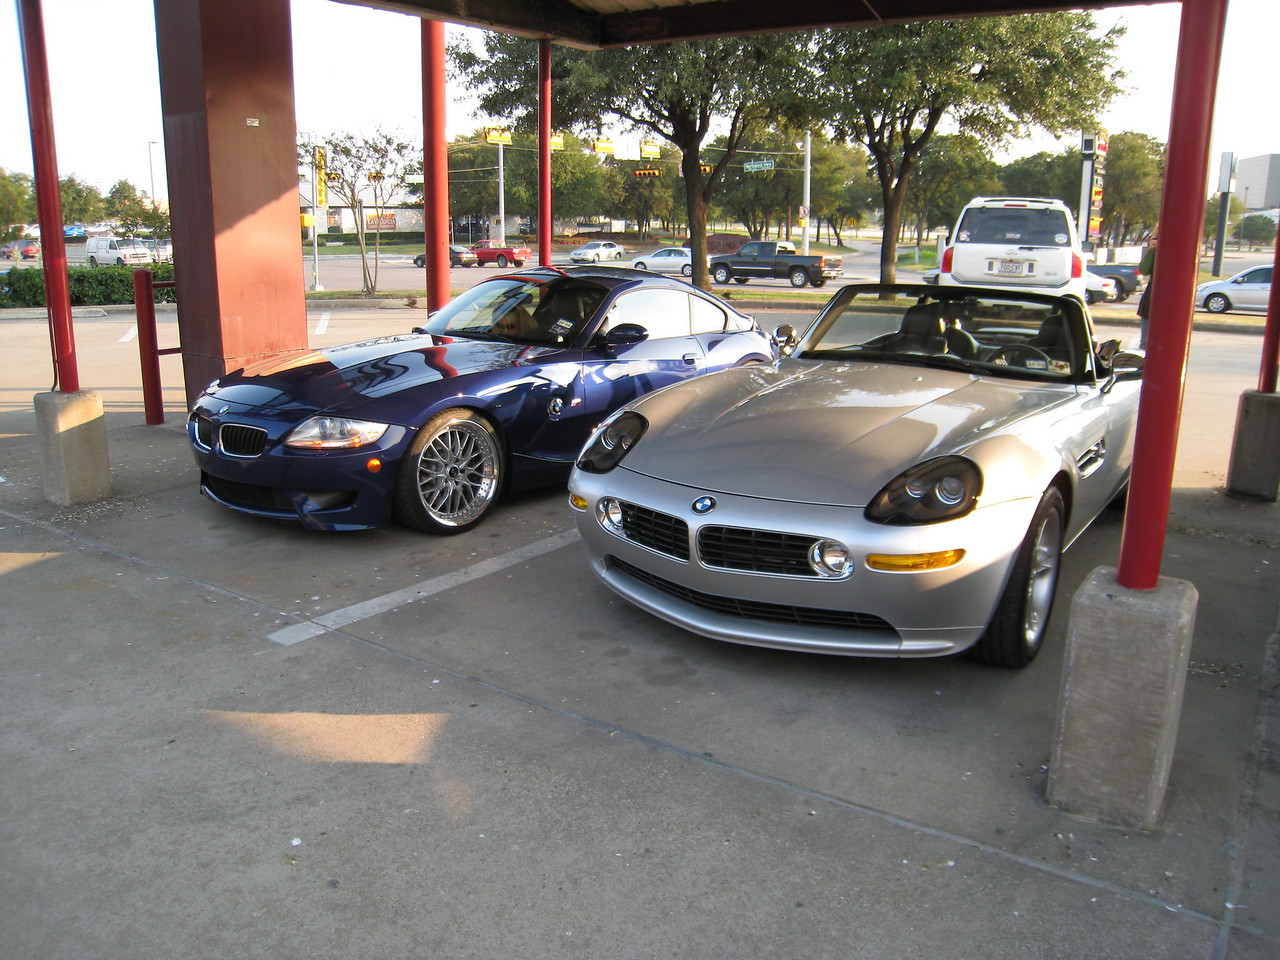 Z4 M Coupe and Z8